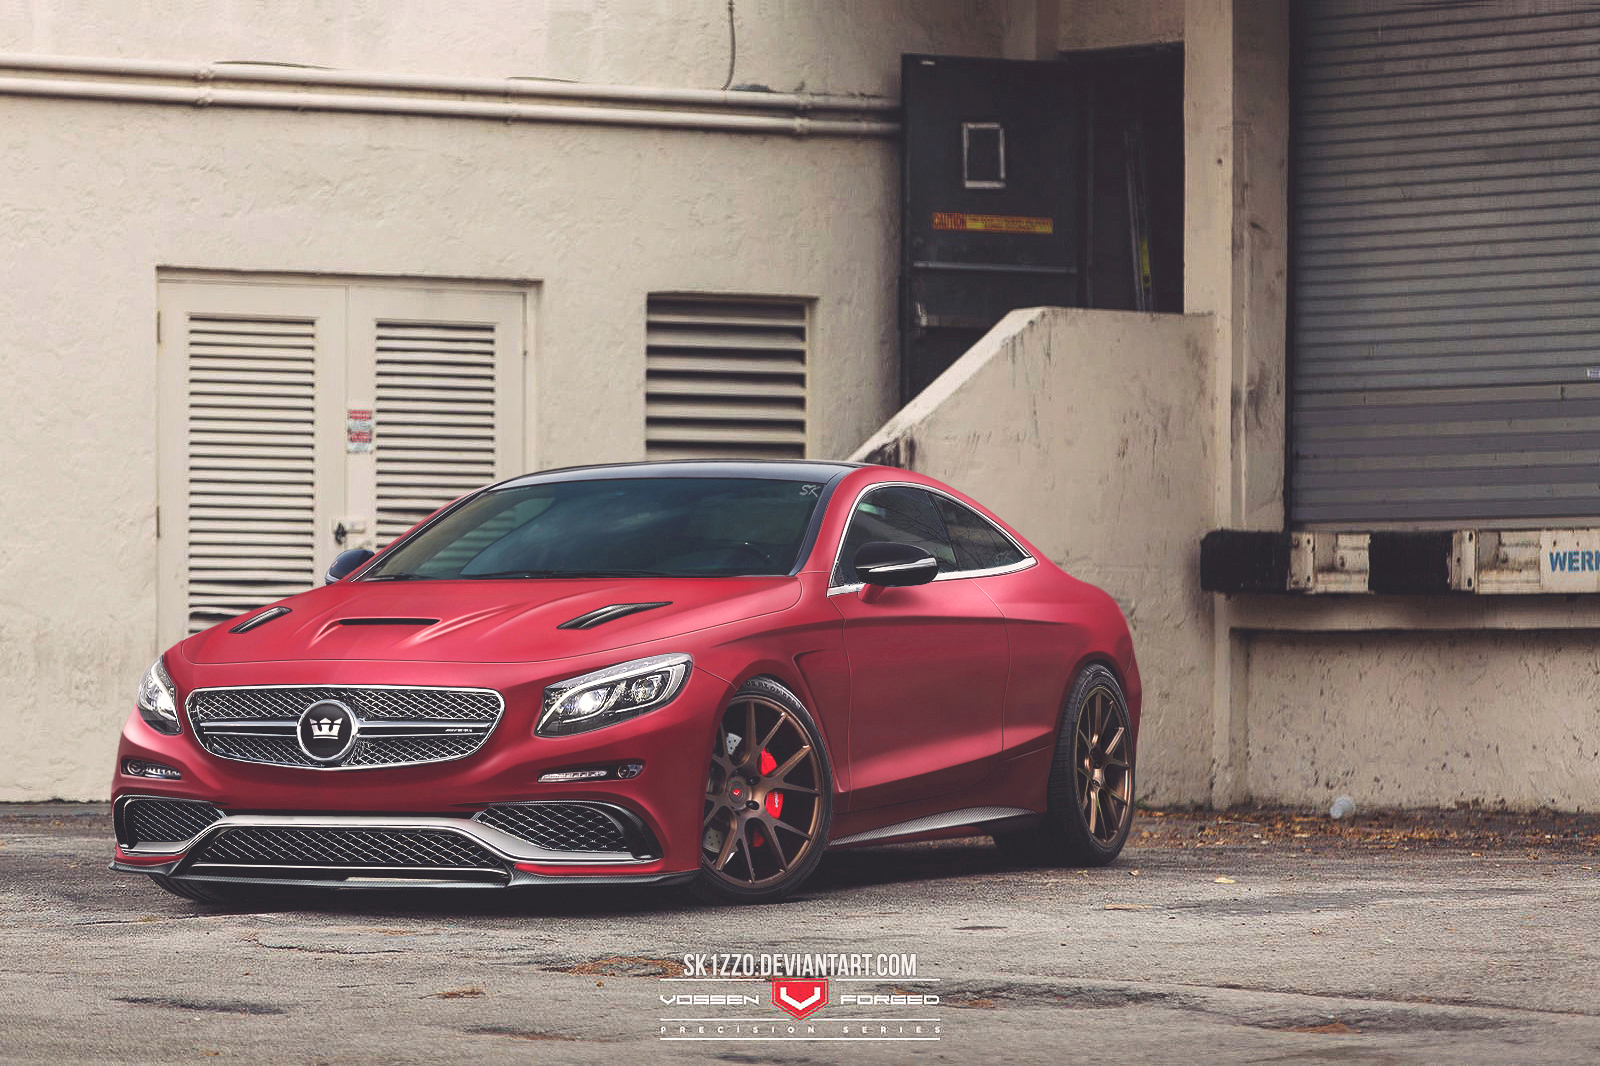 Mercedes benz s65 amg coupe by sk1zzo on deviantart for Mercedes benz s 65